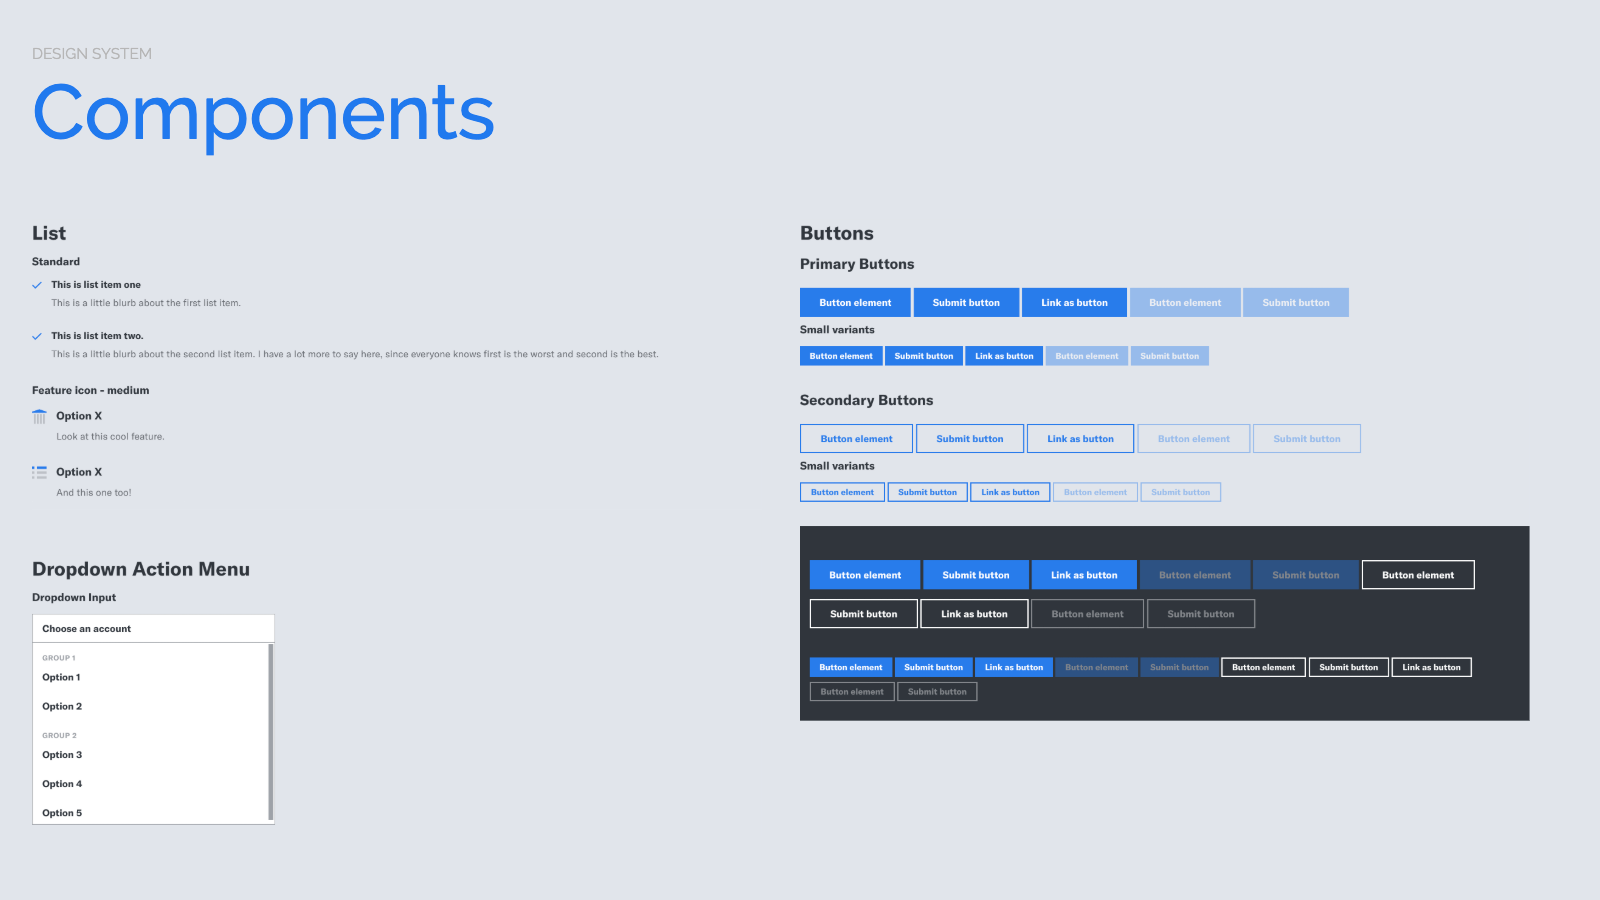 Slide content, Design system components, e.g. List, Button variants, Dropdown